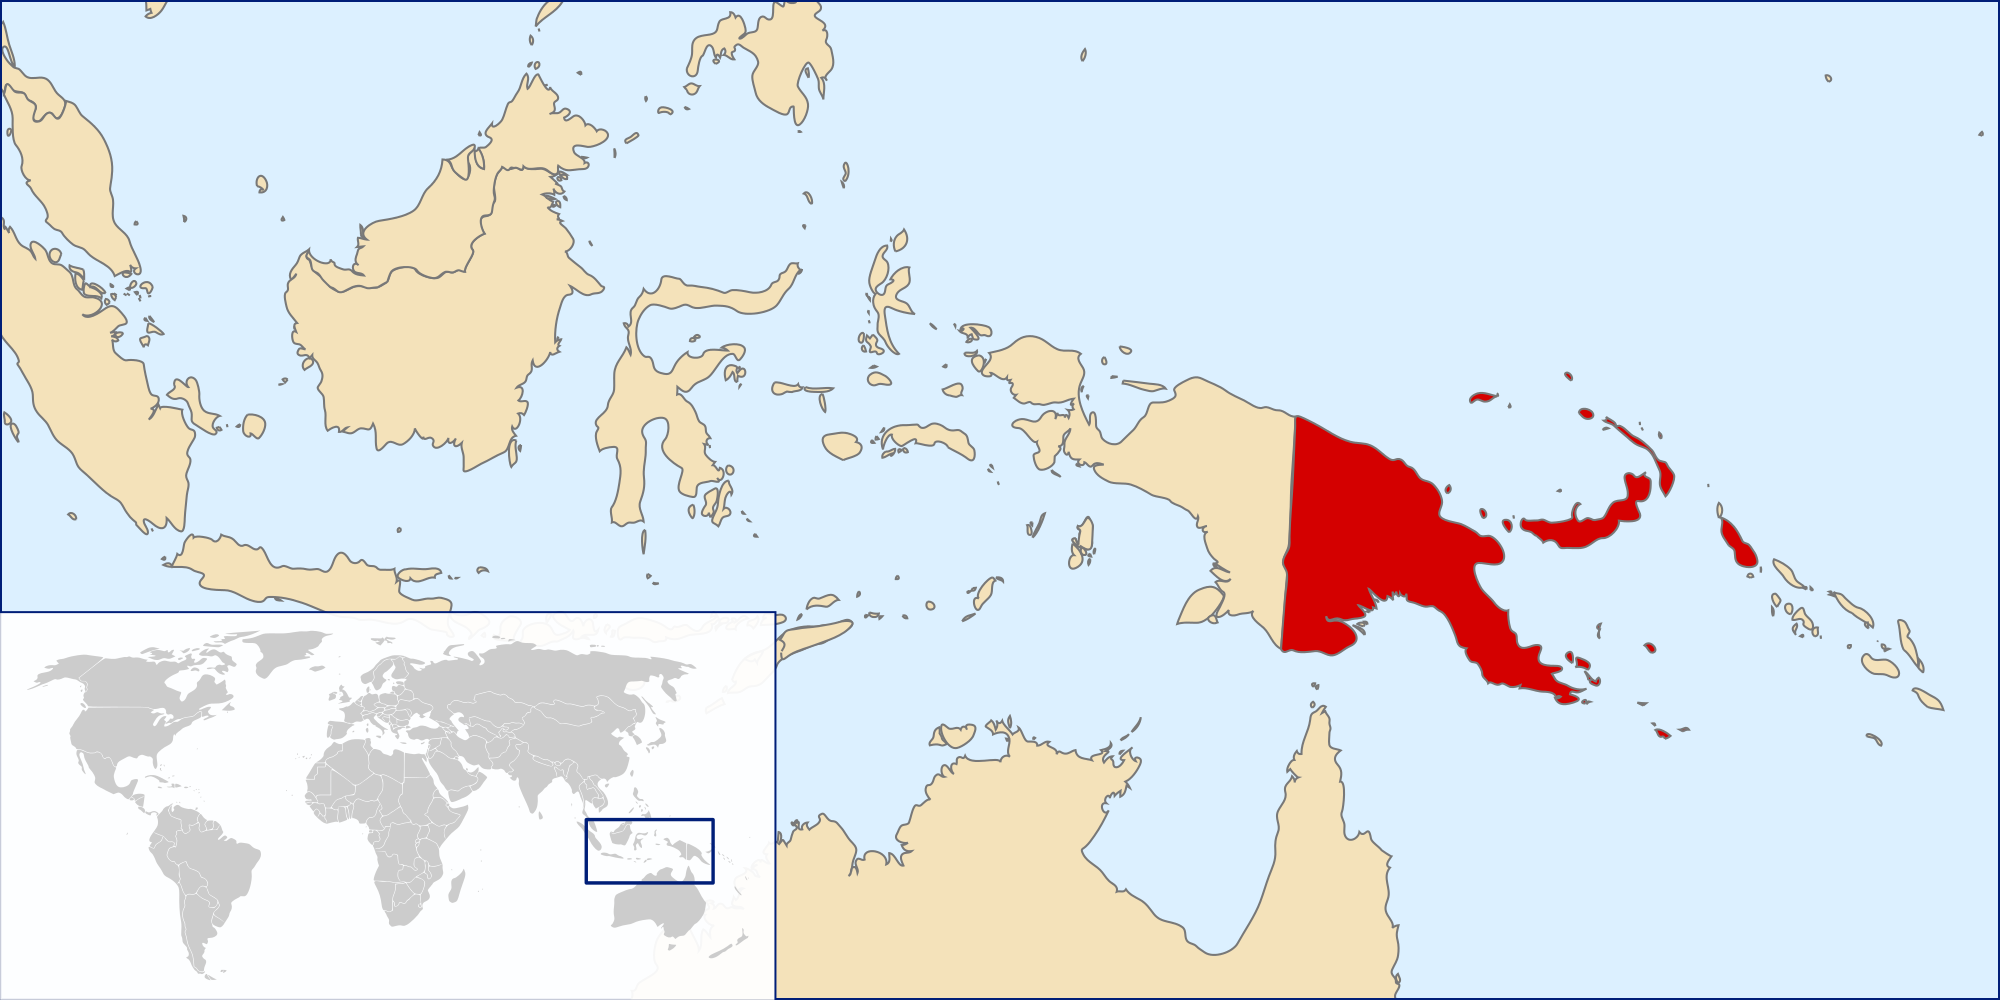 Png on world map. Atlas of papua new